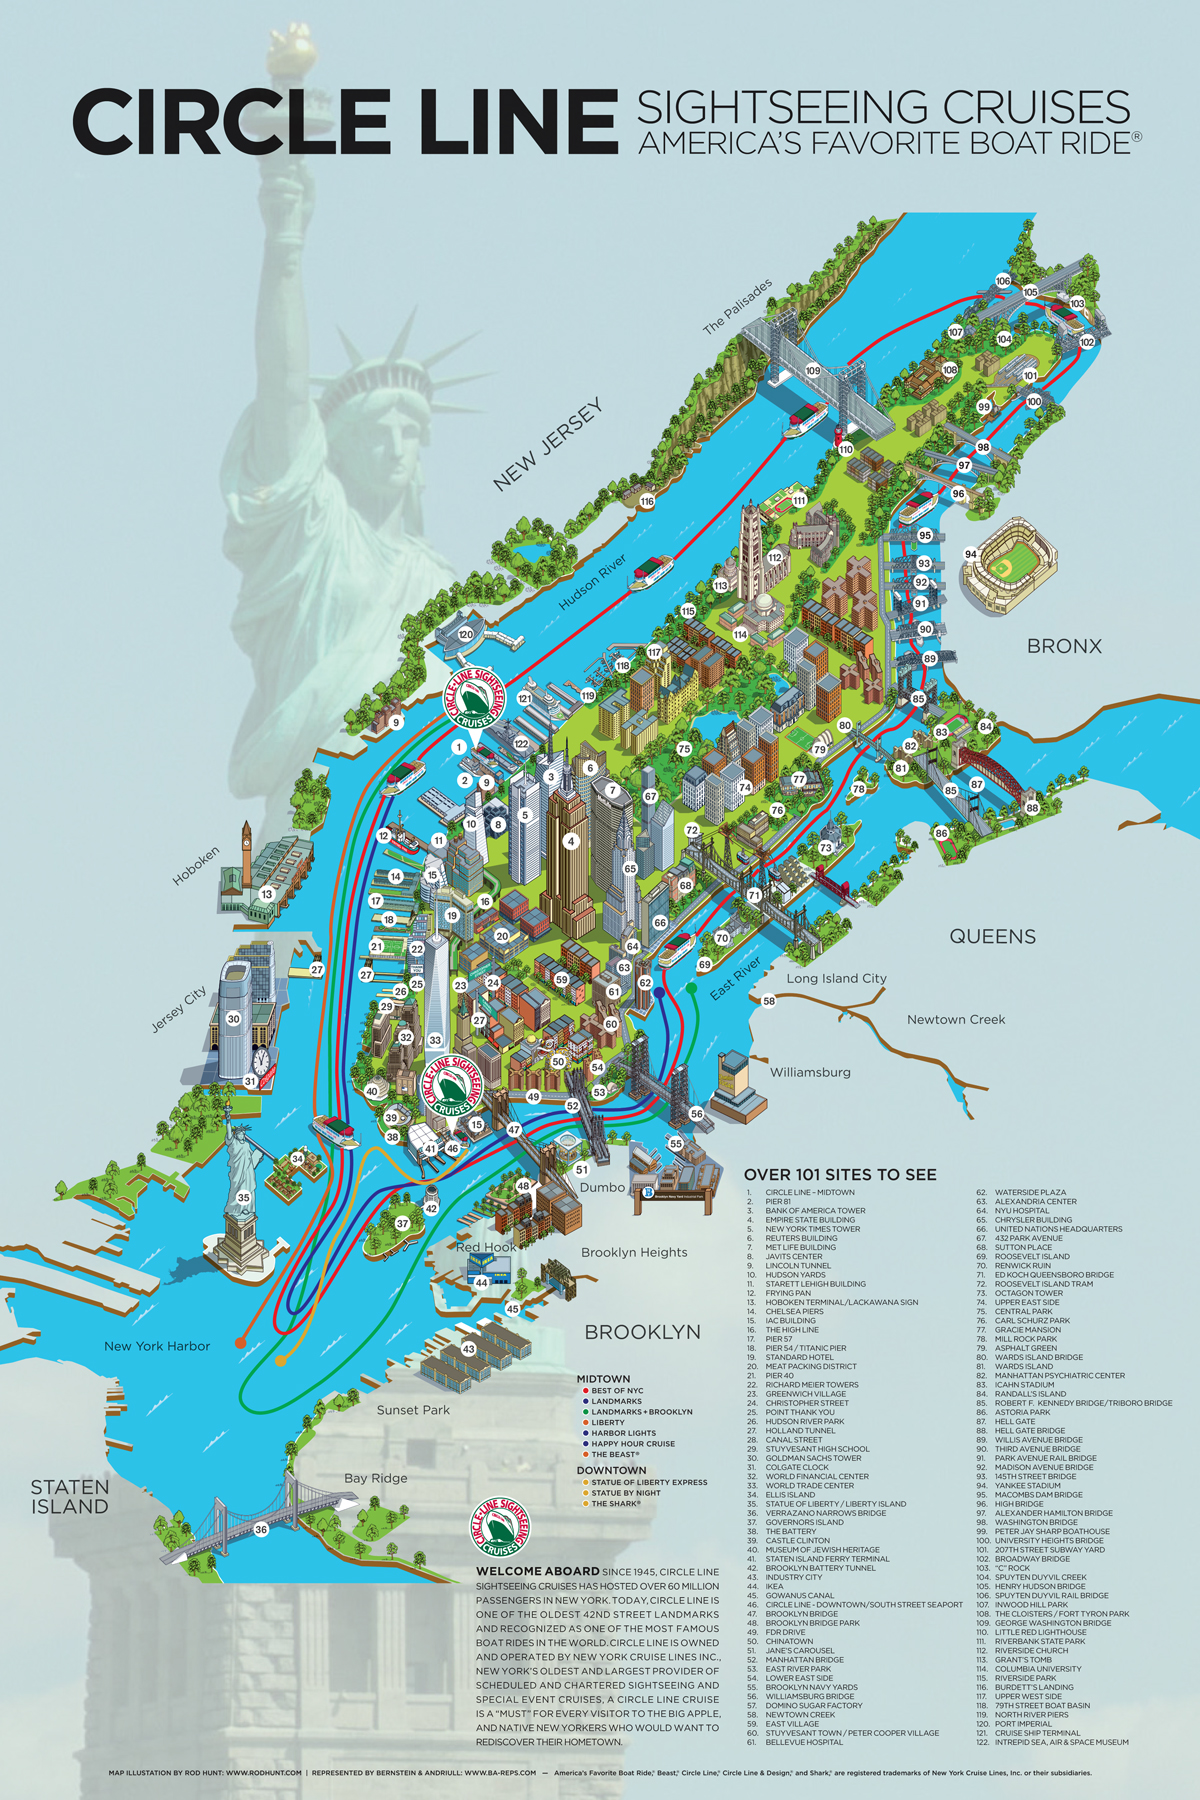 rod hunt was commissioned to create a new version of his 101 new york sights map for circle line sightseeing cruises the aim was to give the map a fresher